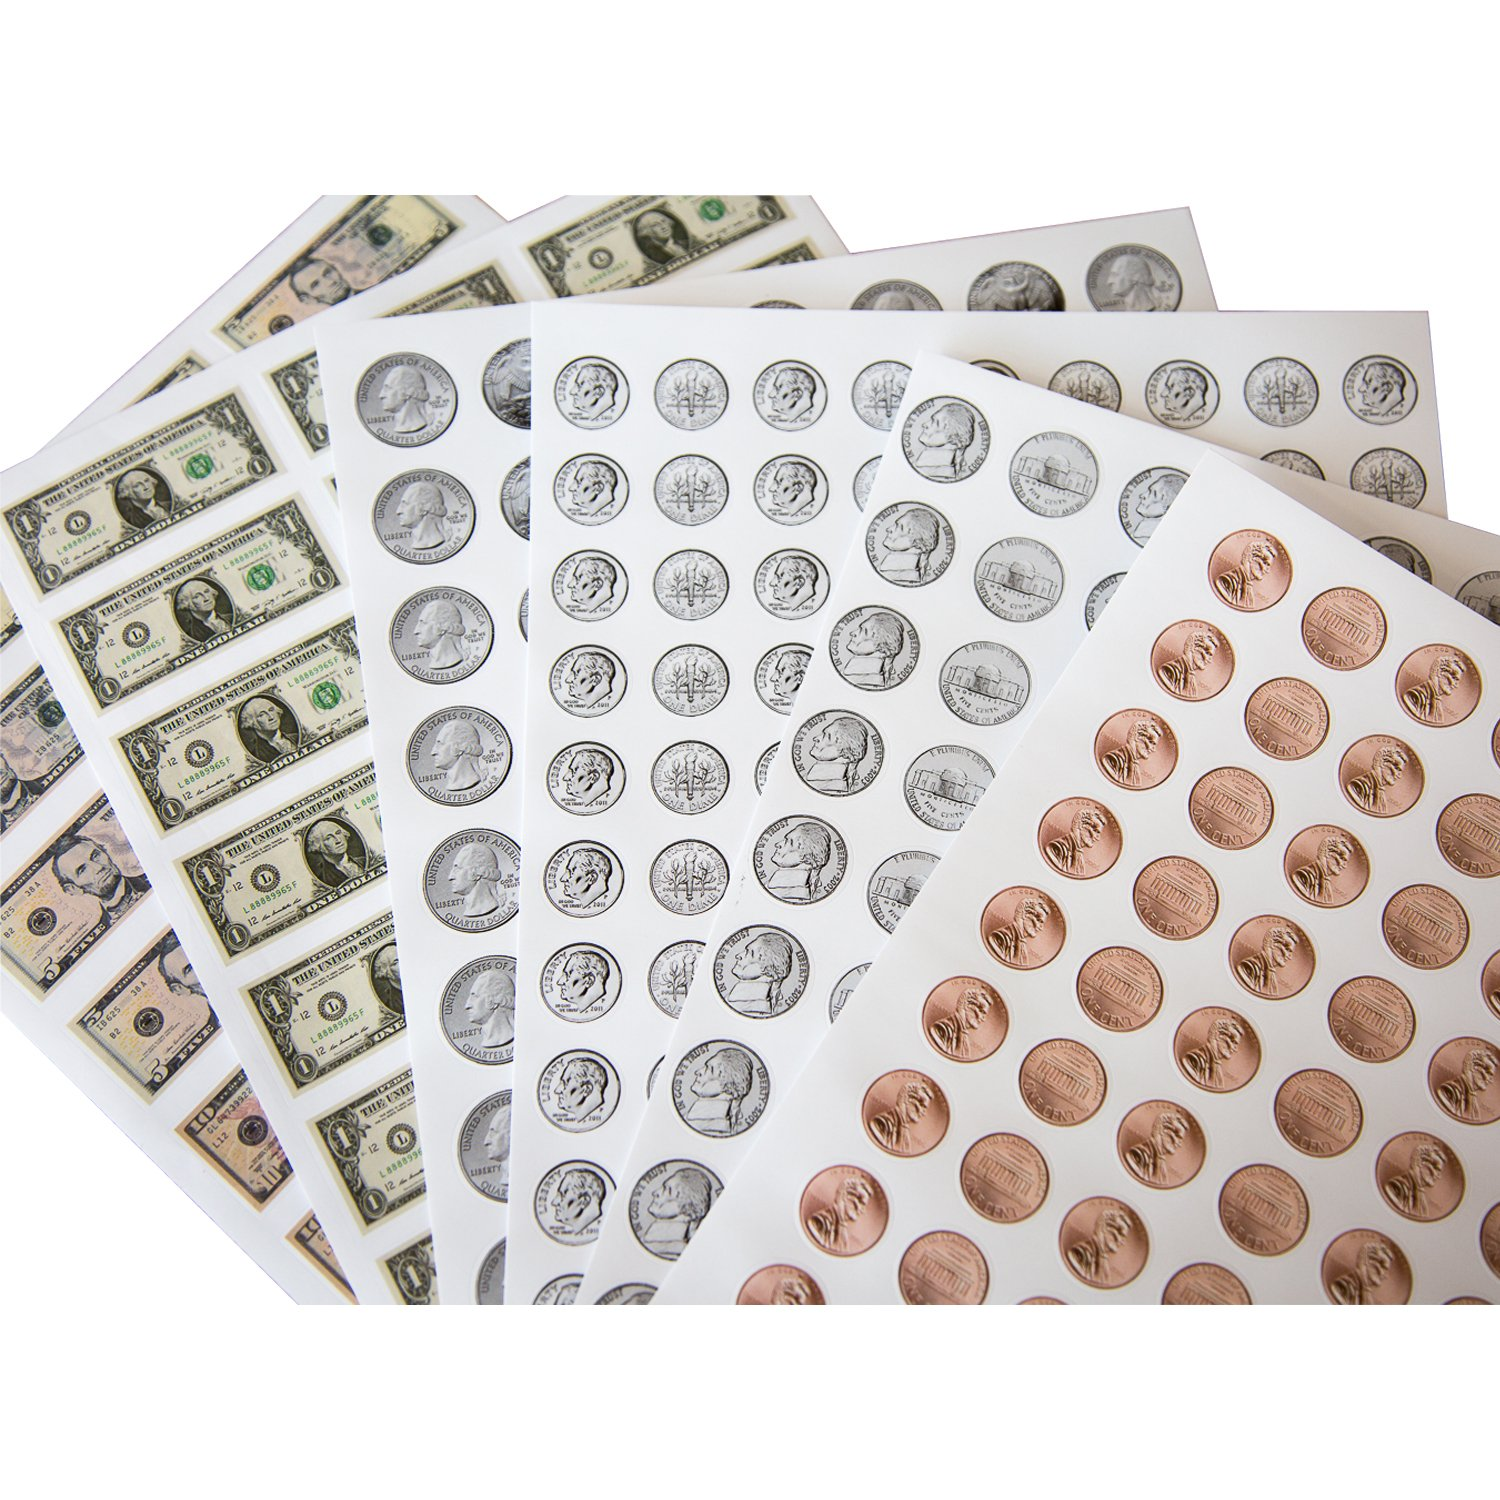 1038 Pieces U.S. Coin & Currency Stickers | For Classroom & Home Use | Extra Strong Adhesive | Realistic Size | 14 Total Sheets | By PureBloom Products by PureBloom Products (Image #1)